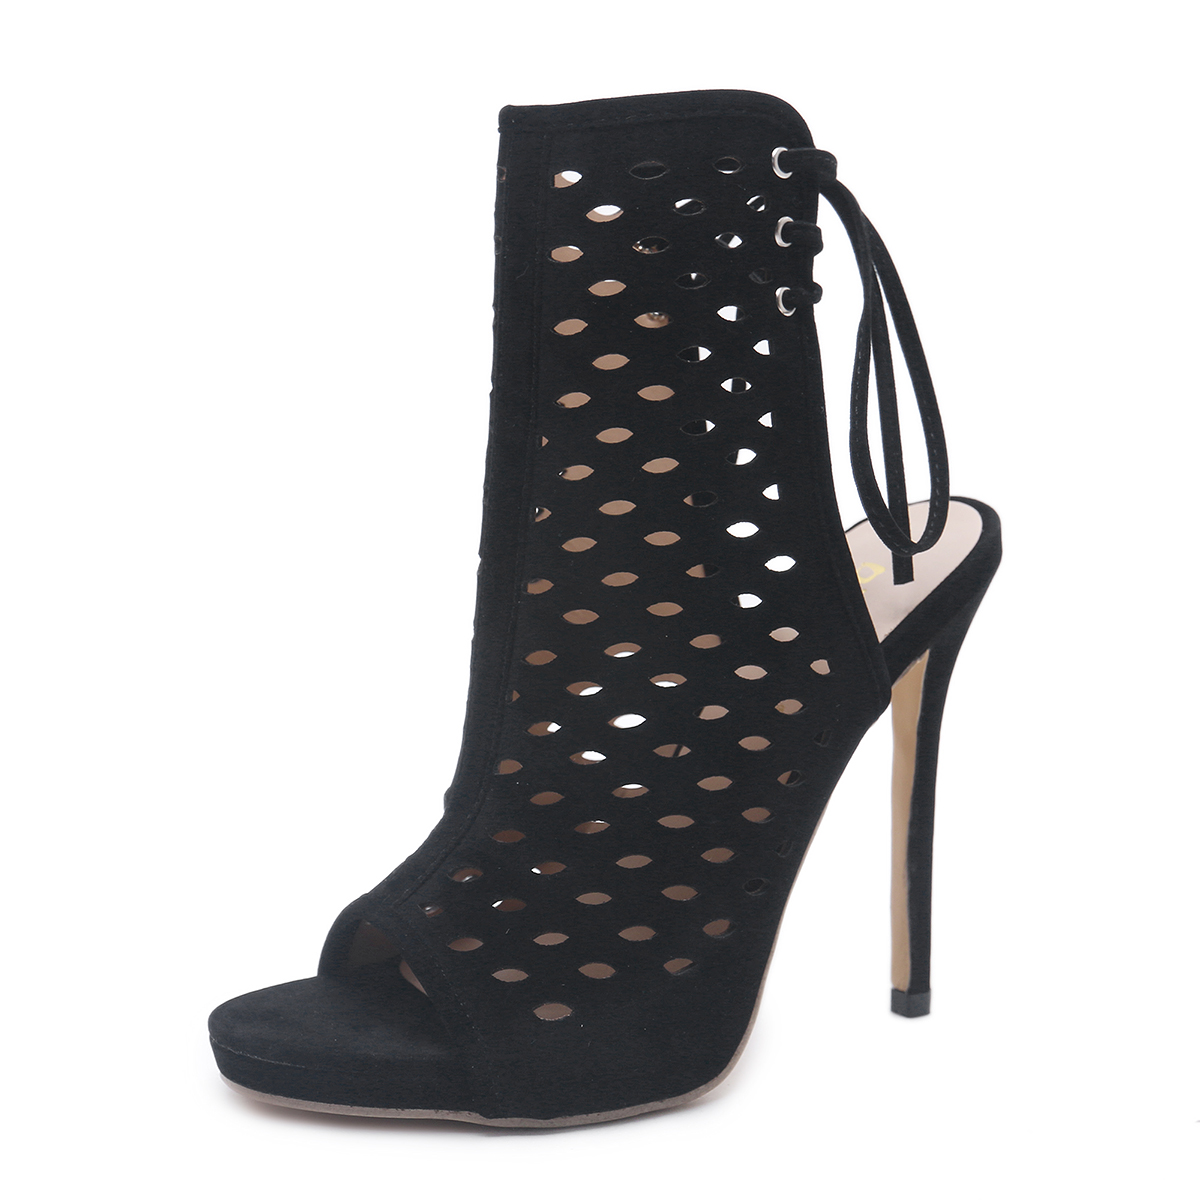 Fashion Week catwalk models high-heeled strap sandals summer hollow lace large size shoes's main photo